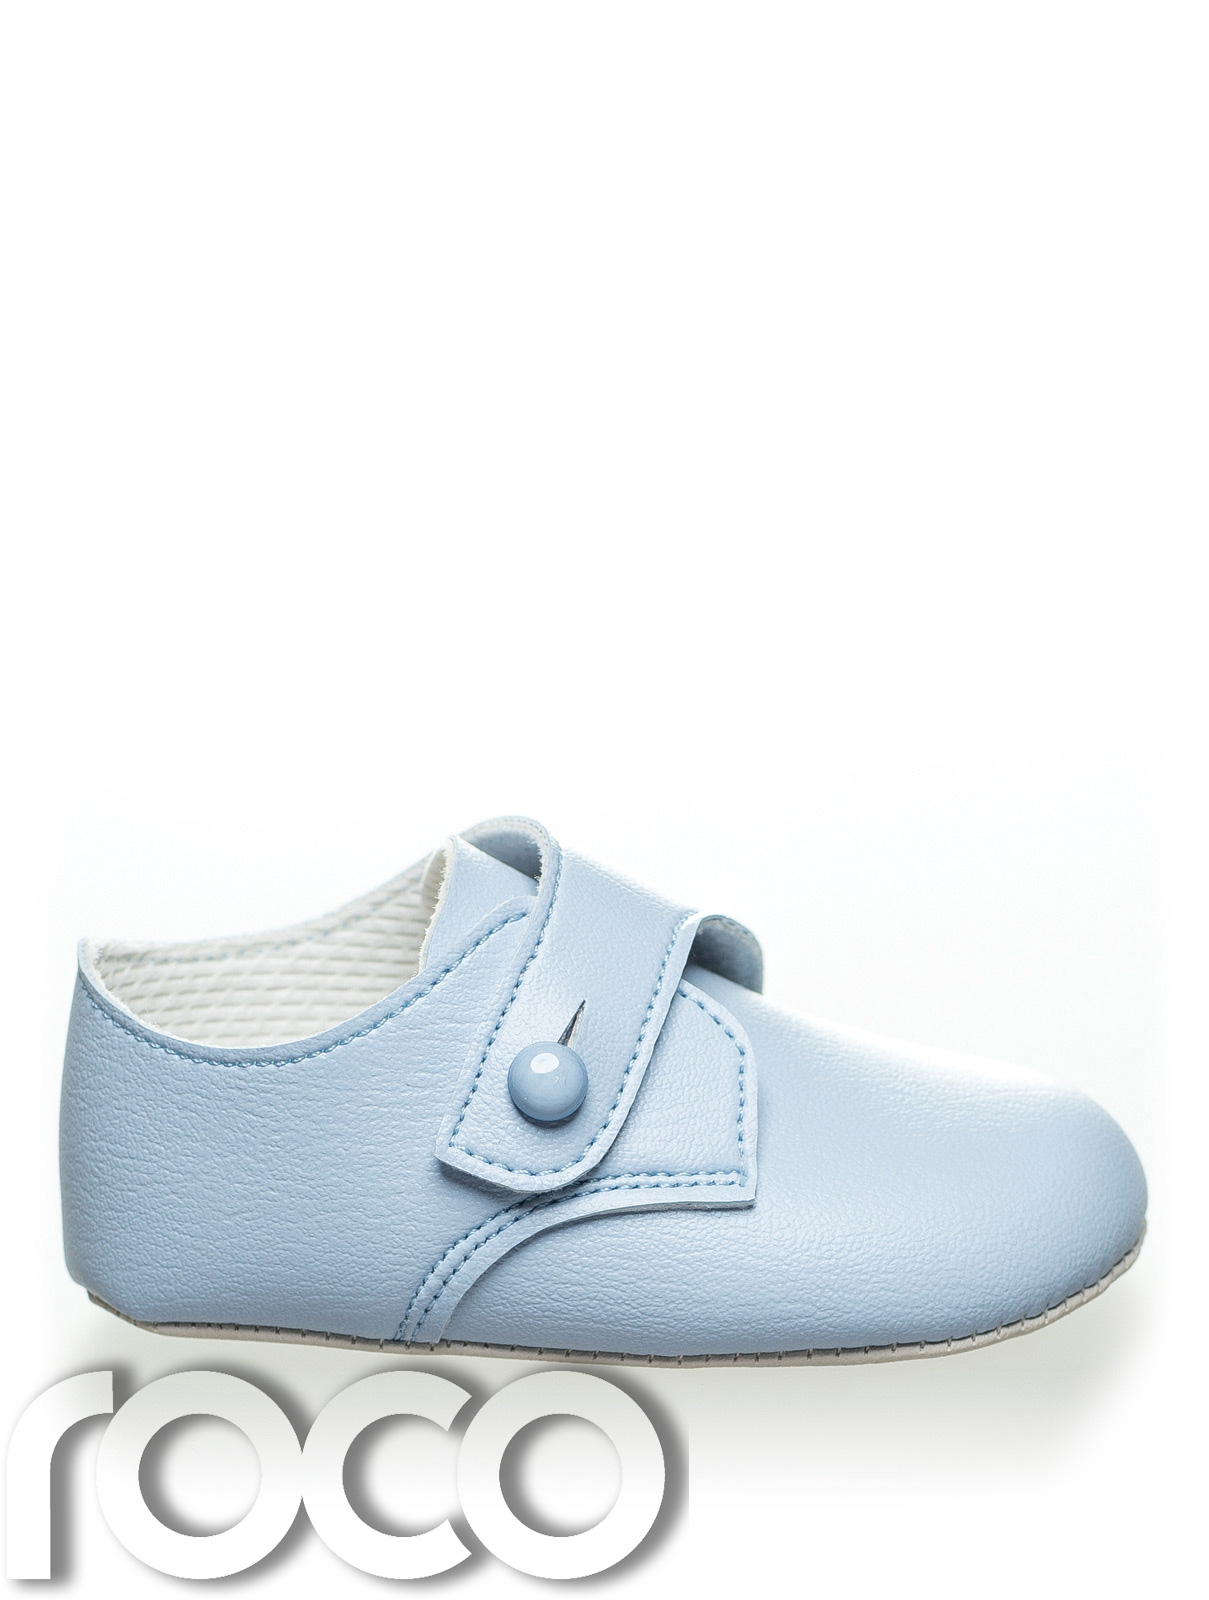 baby boys blue soft sole shoes baby blue christening